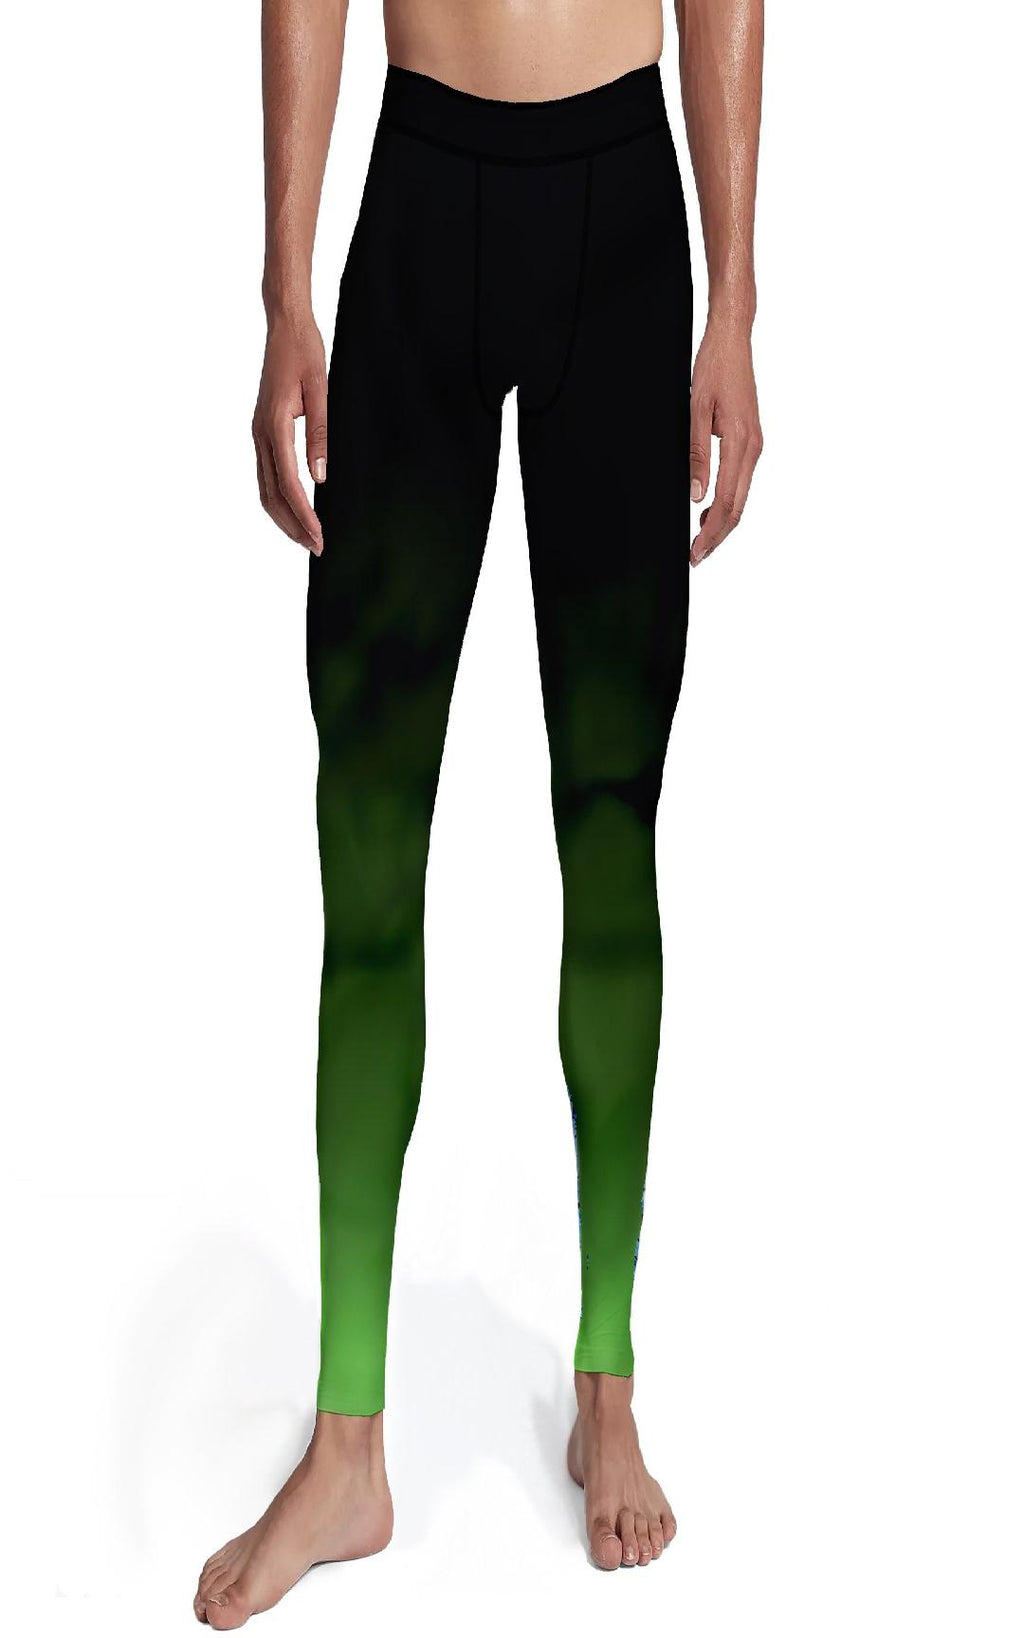 Men's Black Green Ombre Tights